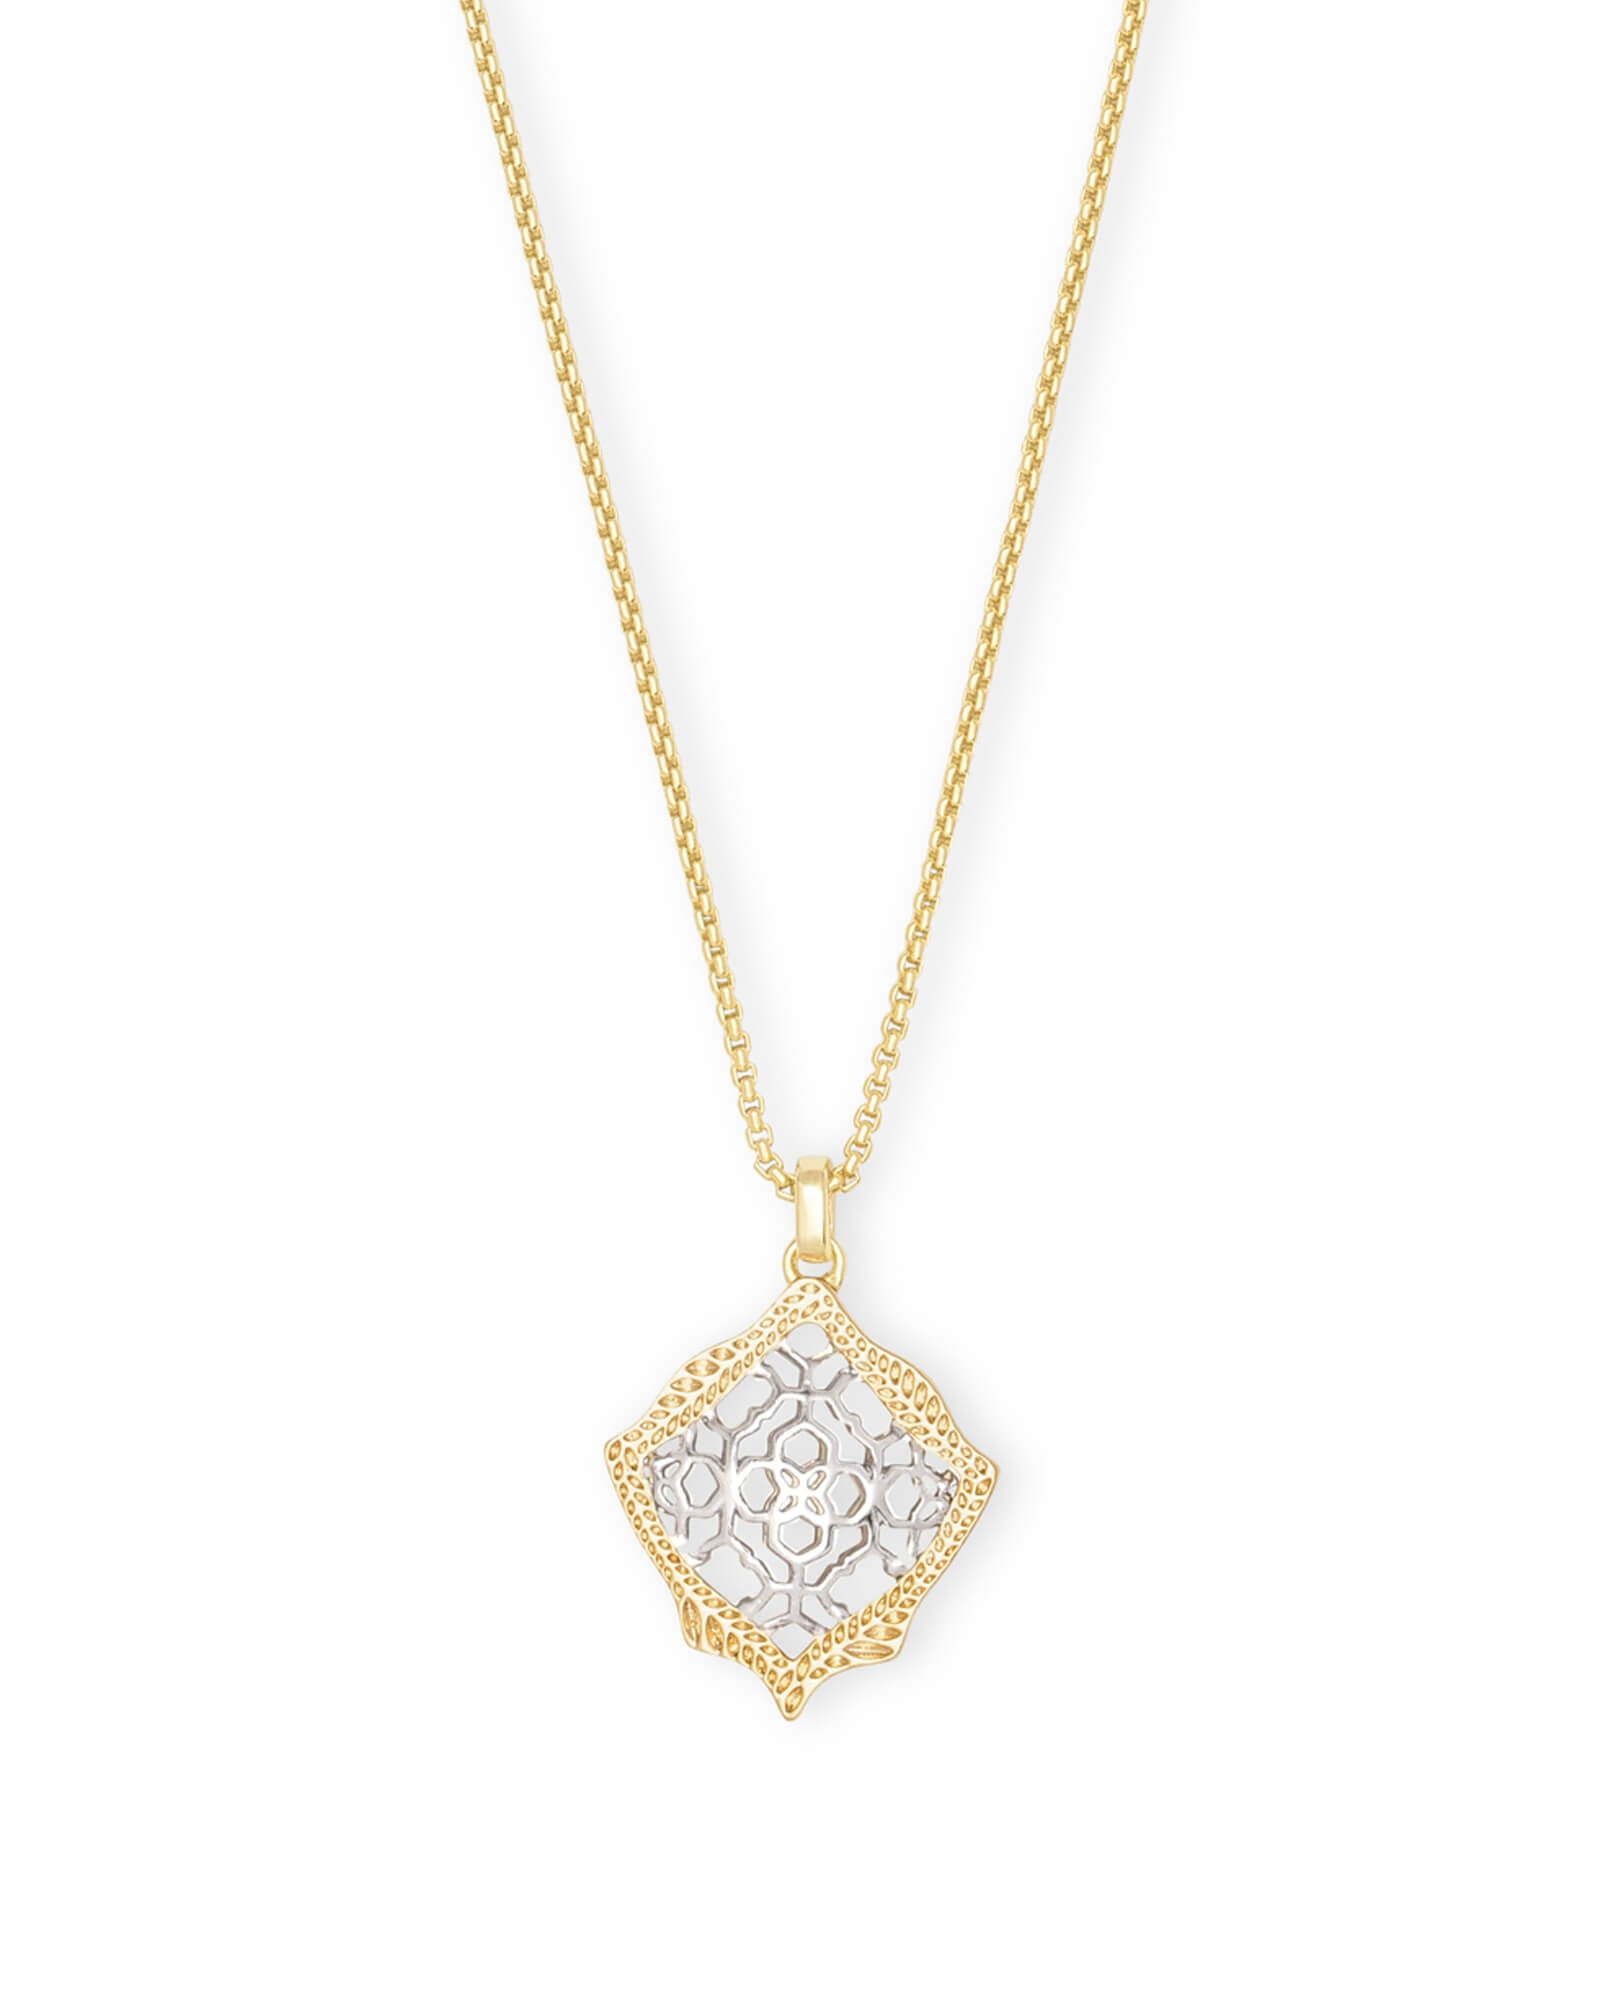 Kendra Scott Kacey Gold Long Pendant Necklace In Silver Filigree Mix